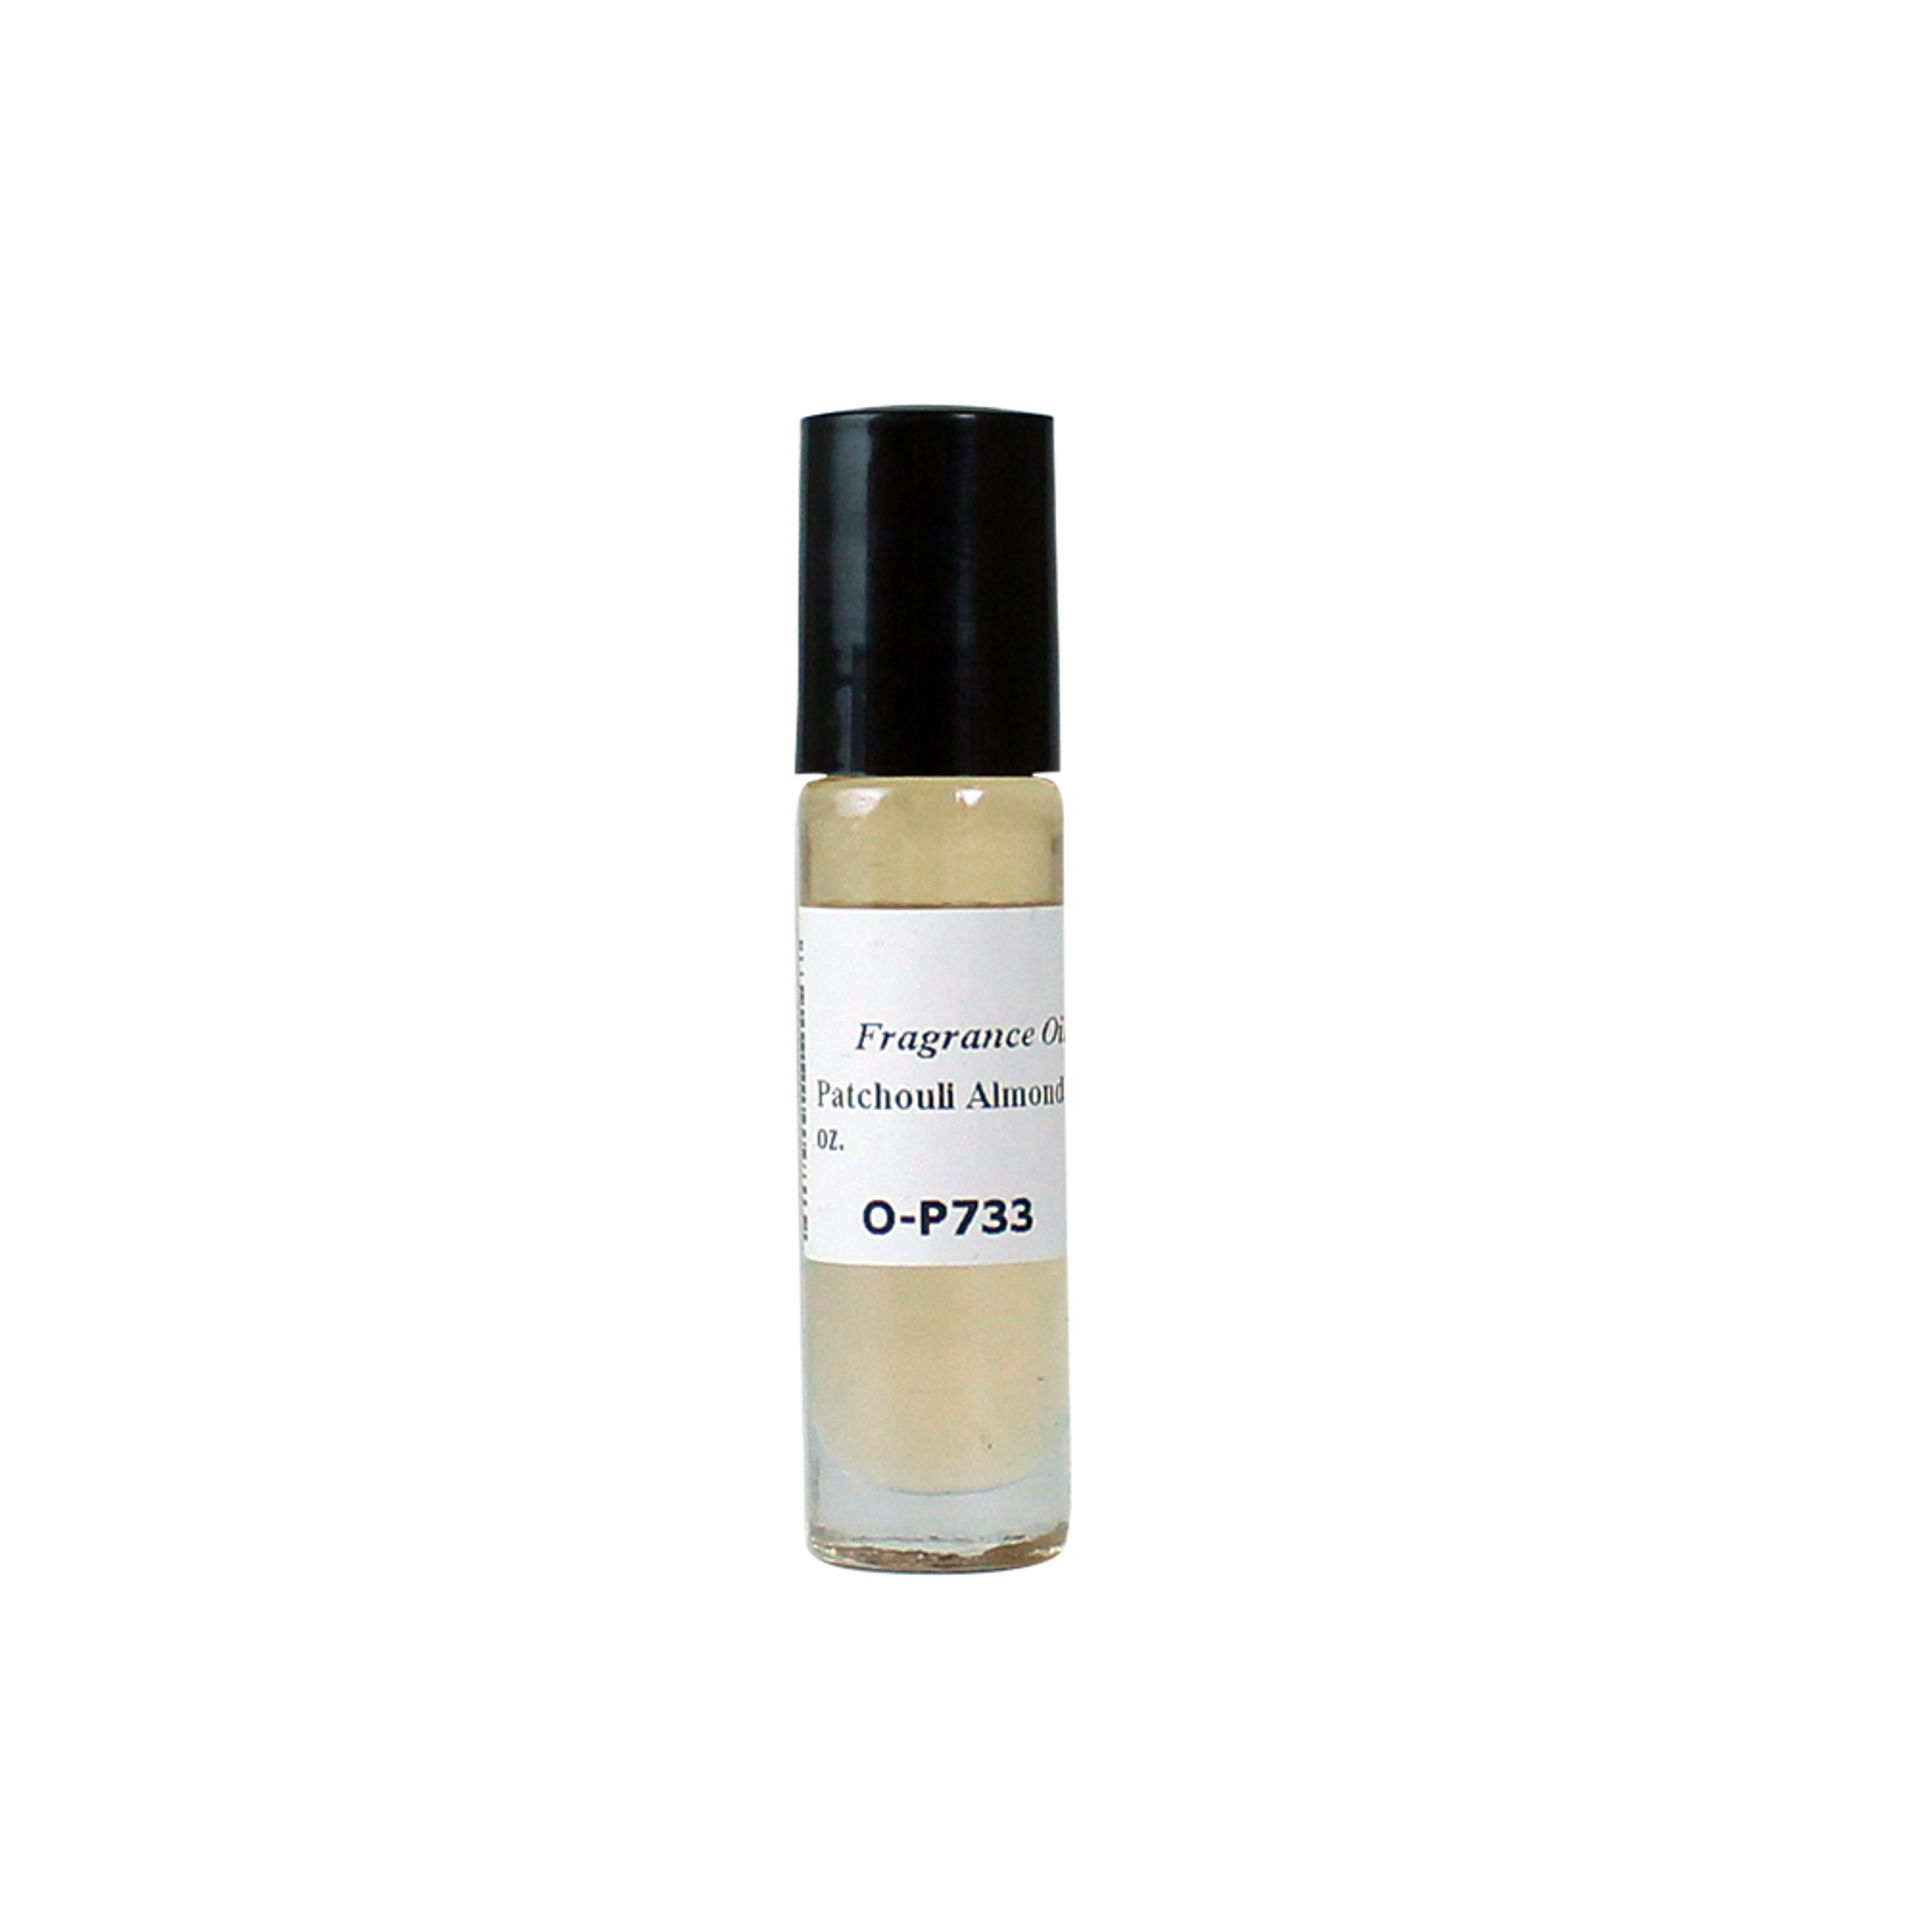 Picture of Patchouli Almond - 1/3 oz.